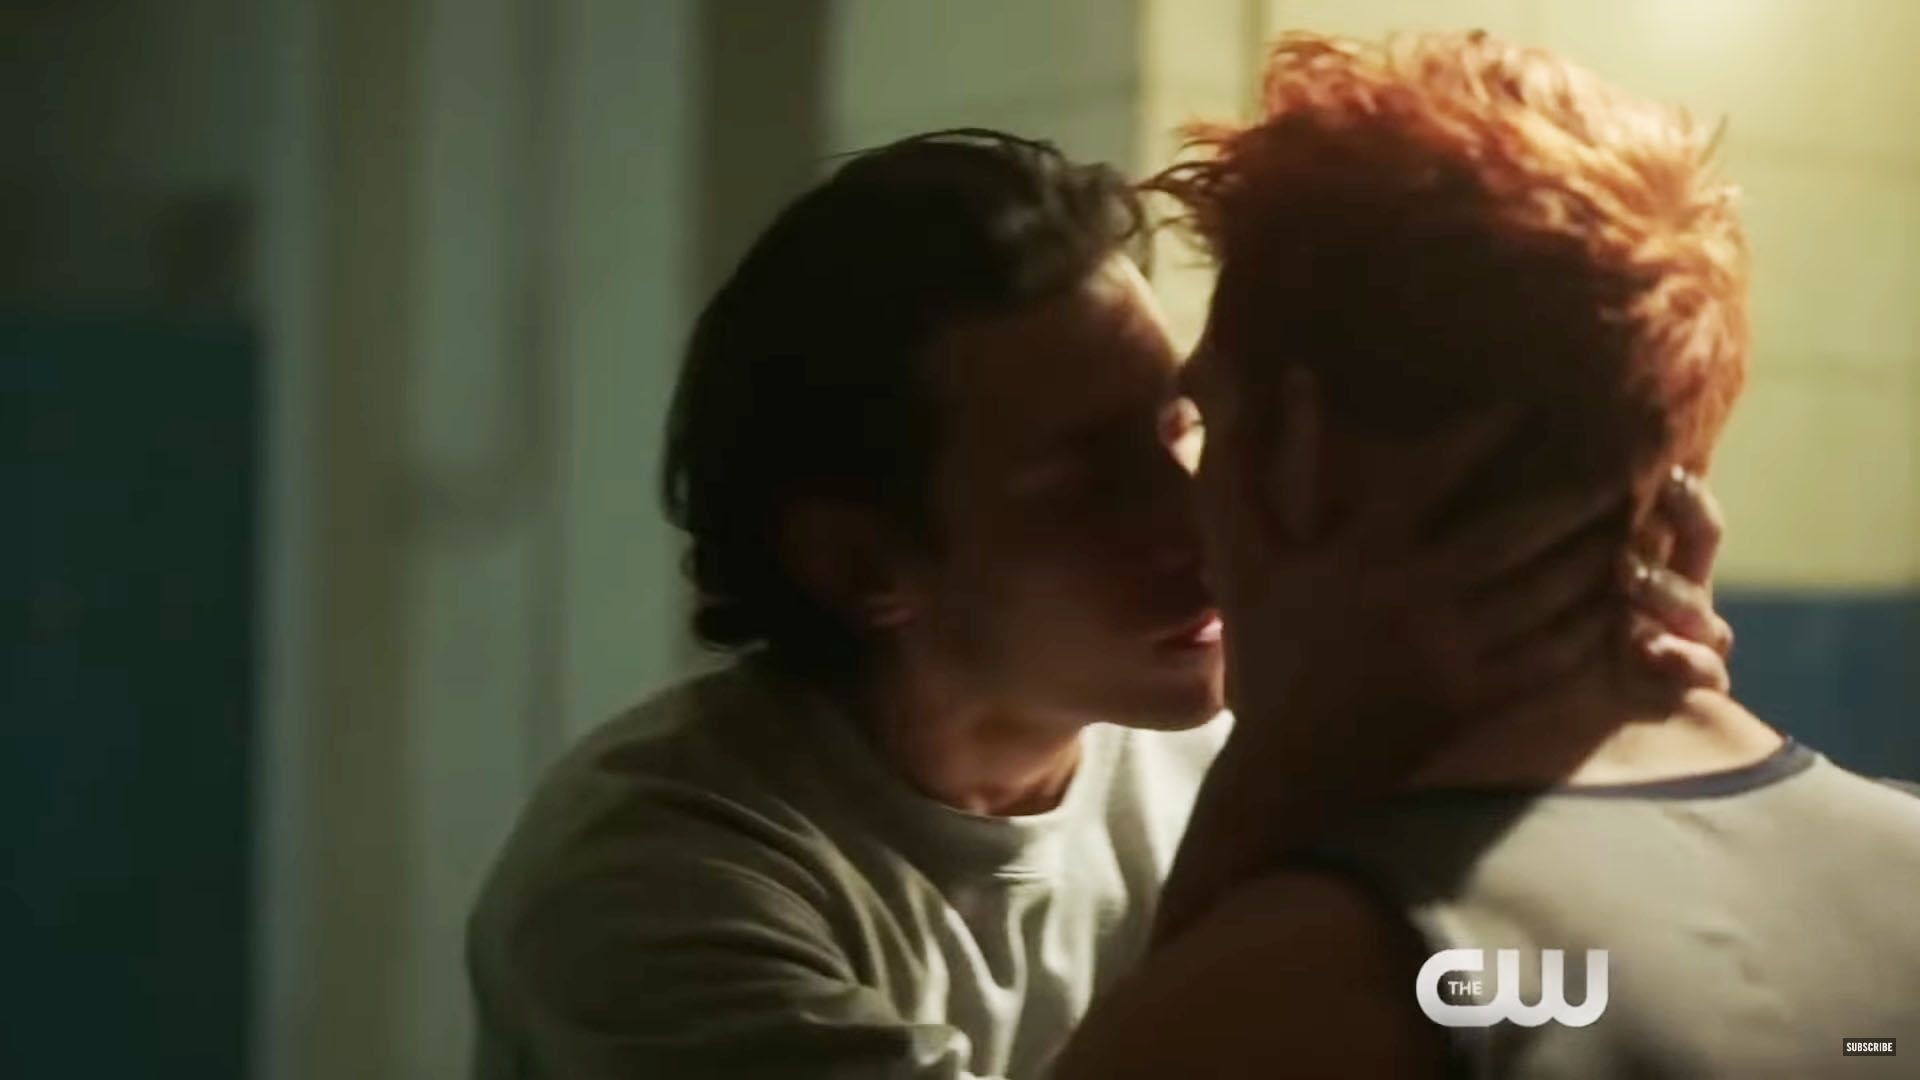 Archie Locks Lips With Another Guy In New Riverdale Sneak